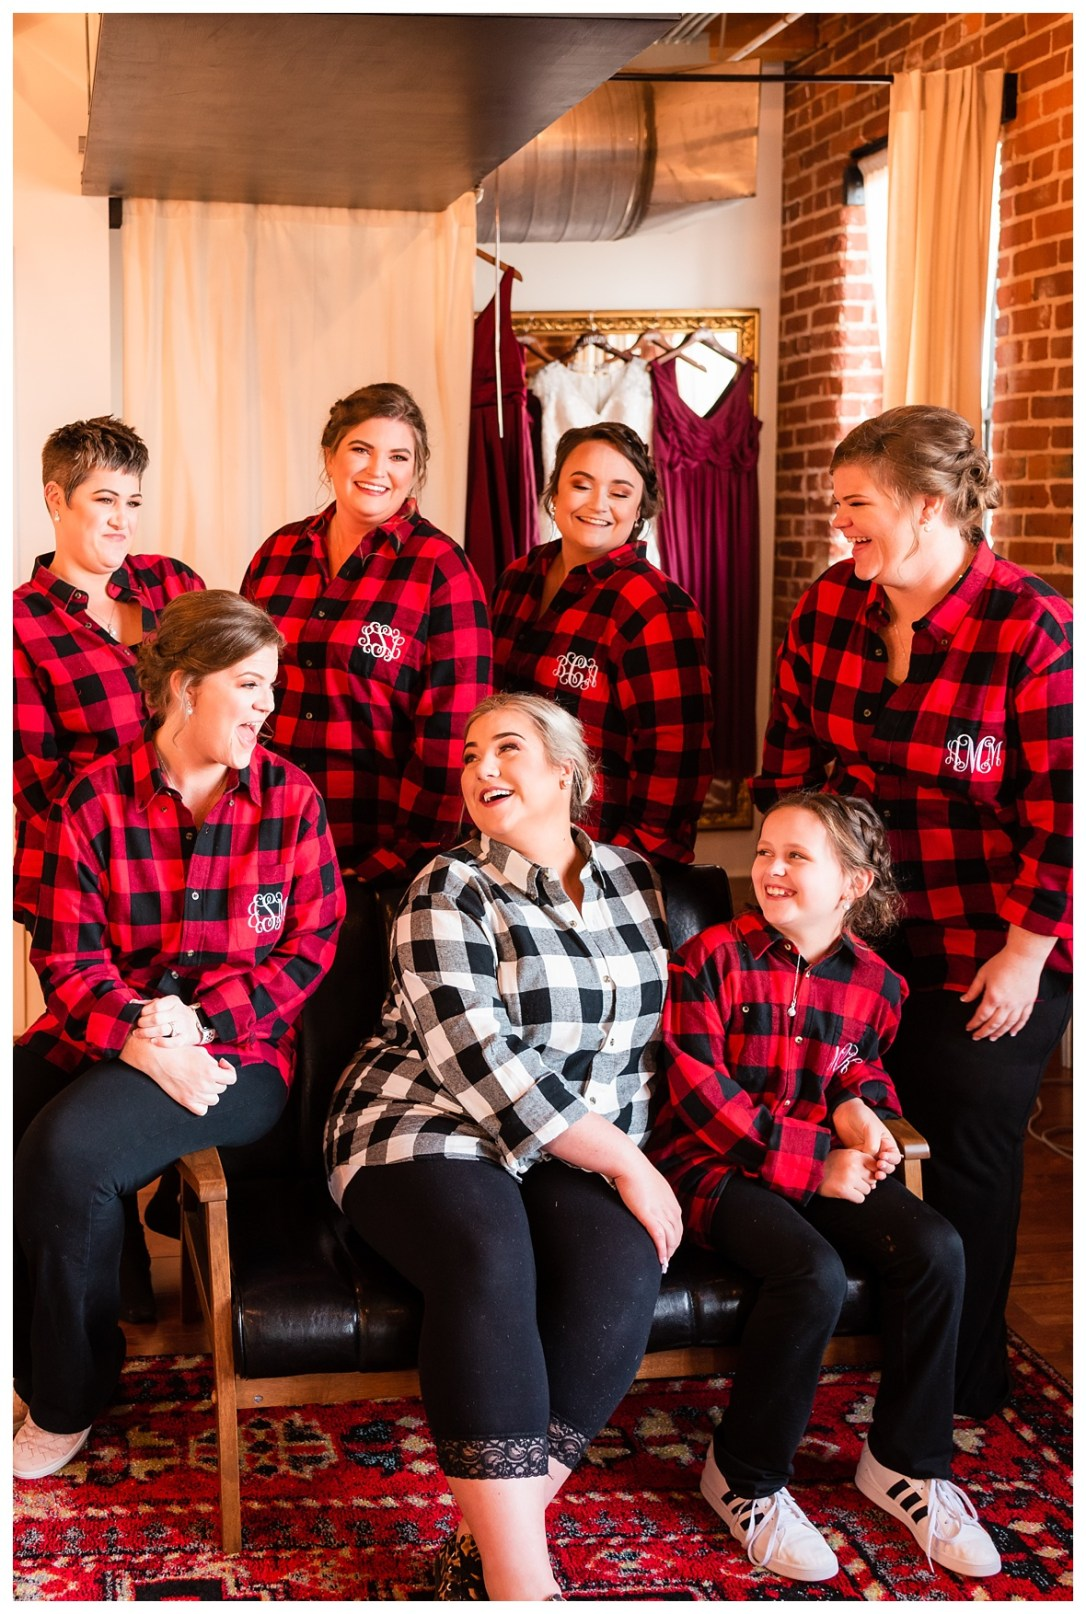 monogram flannel shirts getting ready with bride